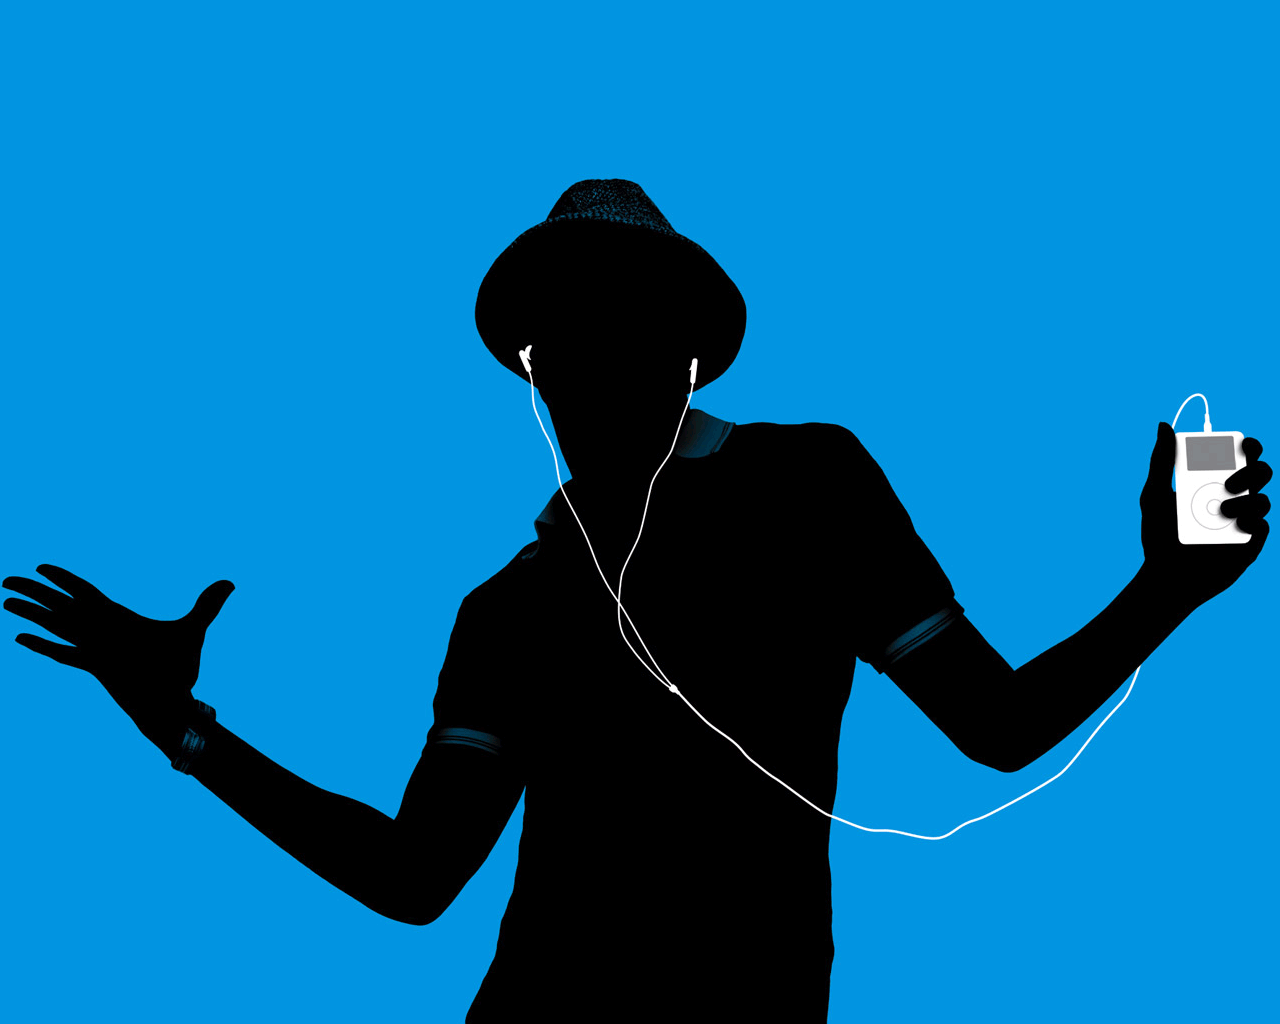 ipod_people_blue